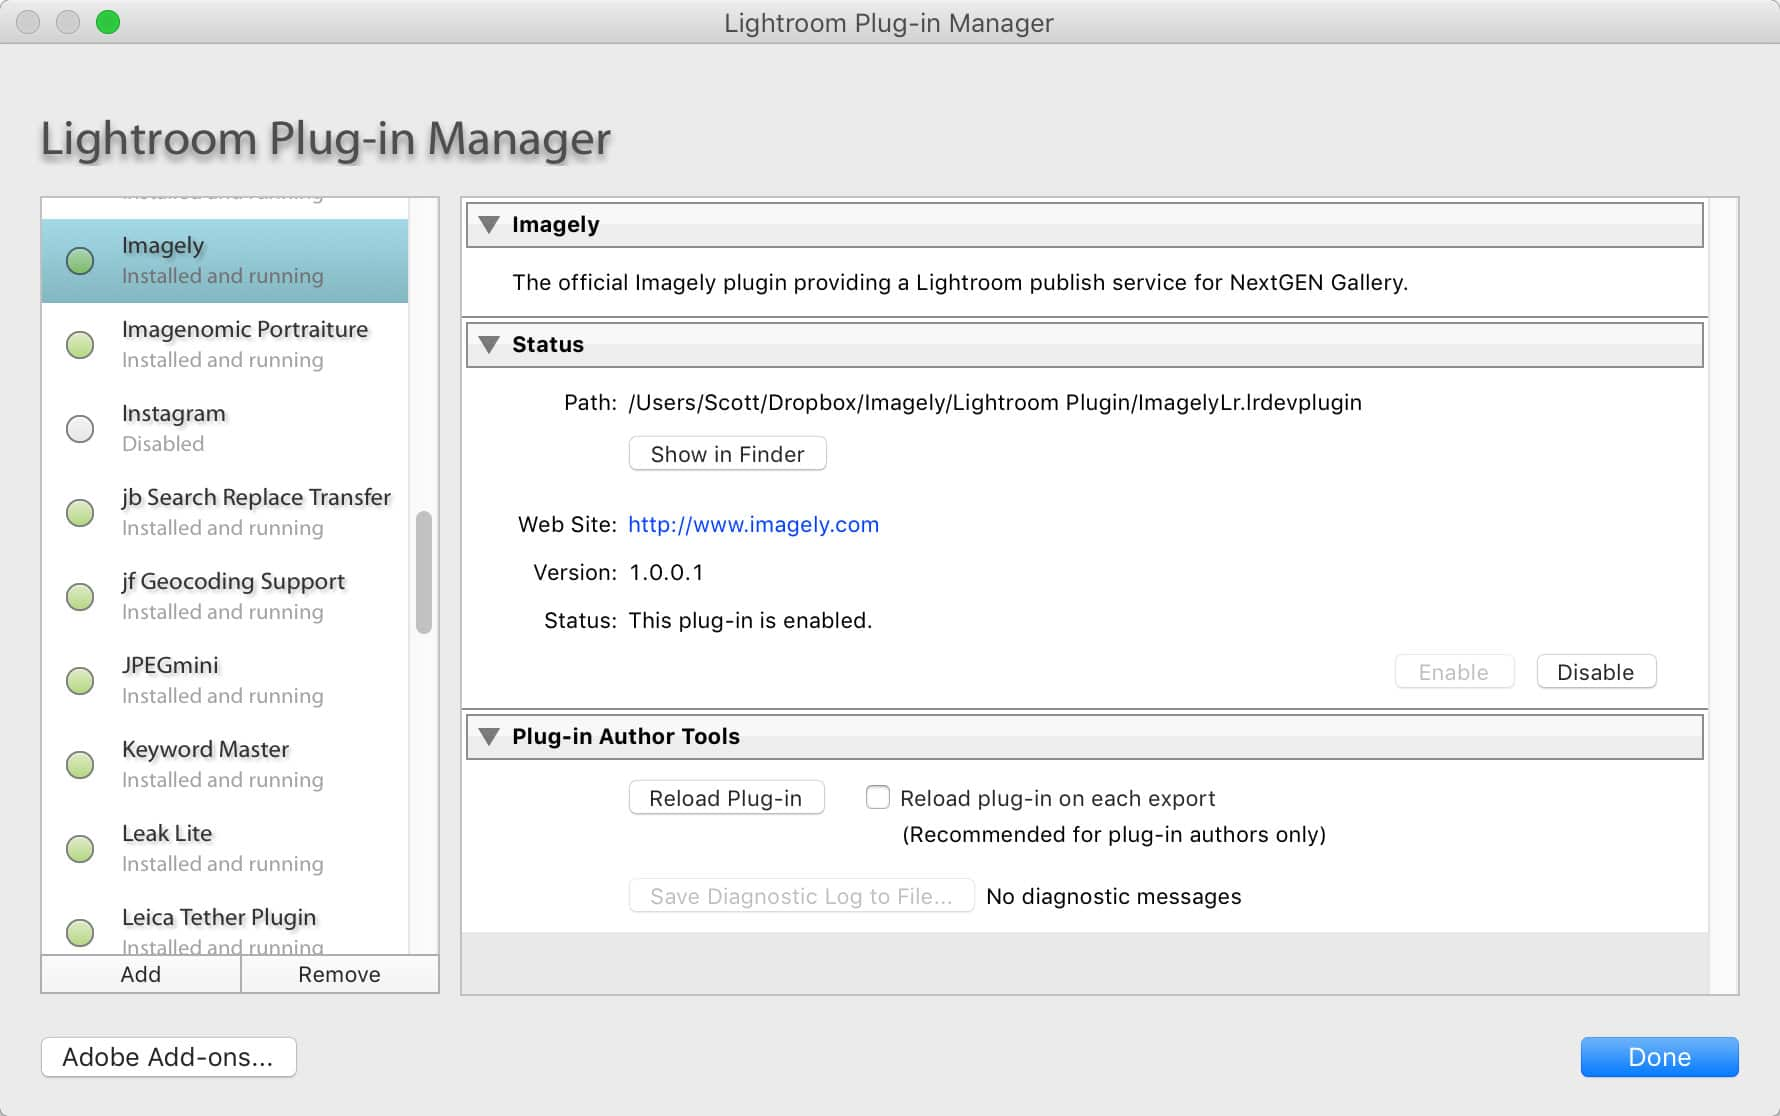 Step 4 - Once installed, make sure the plugin is running and the enable button is shaded.